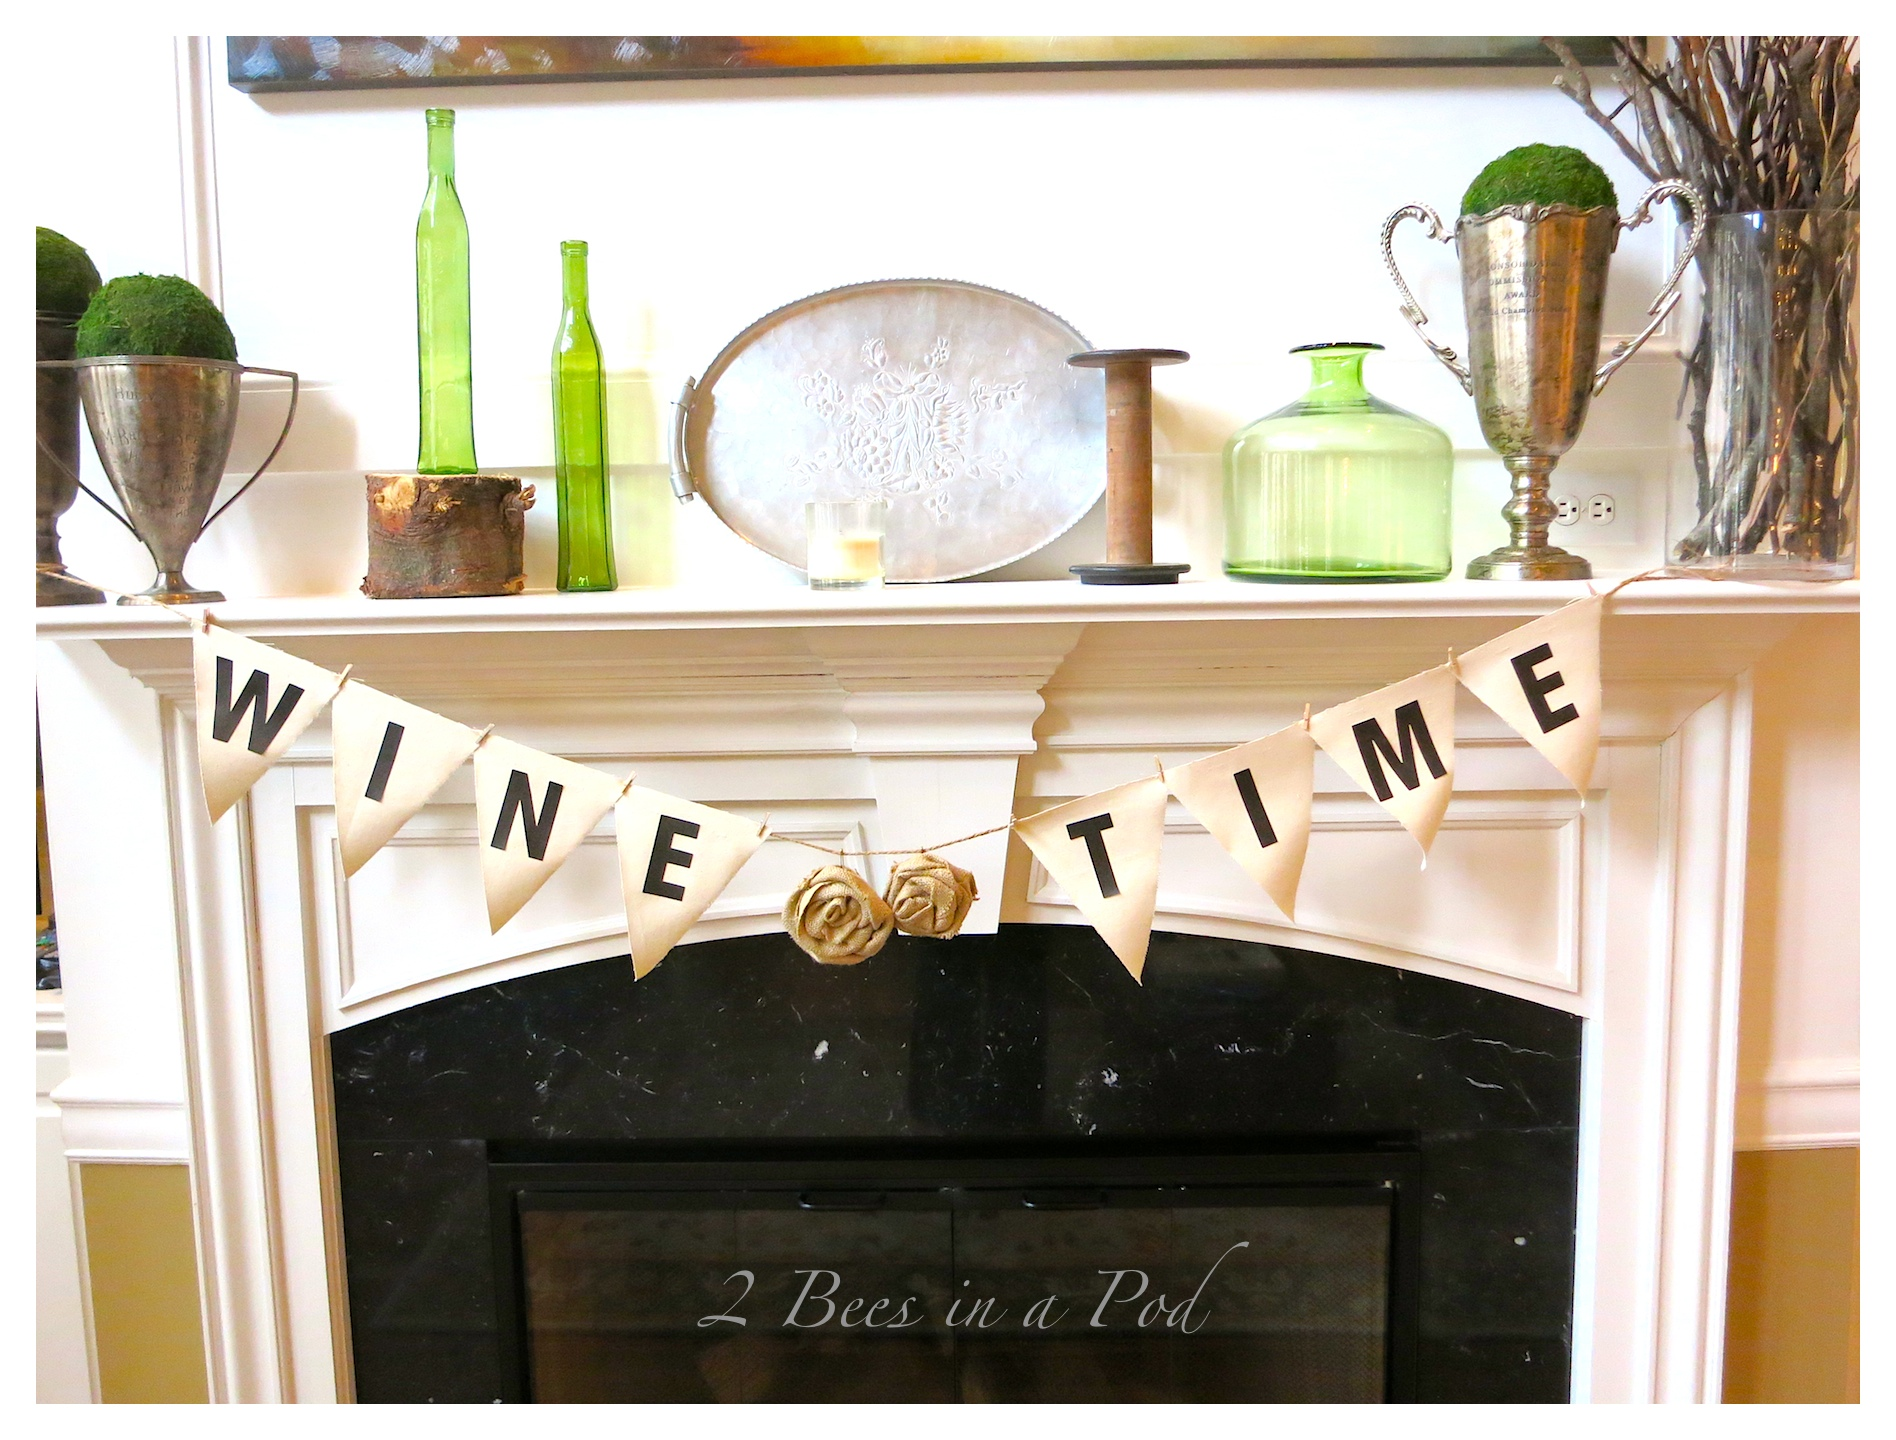 Hosting a fun wine tasting party. For our decor we incorporated vintage elements, chalkboard art, banner, burlap, wine tags. And of course chocolates, cheeses and wine.